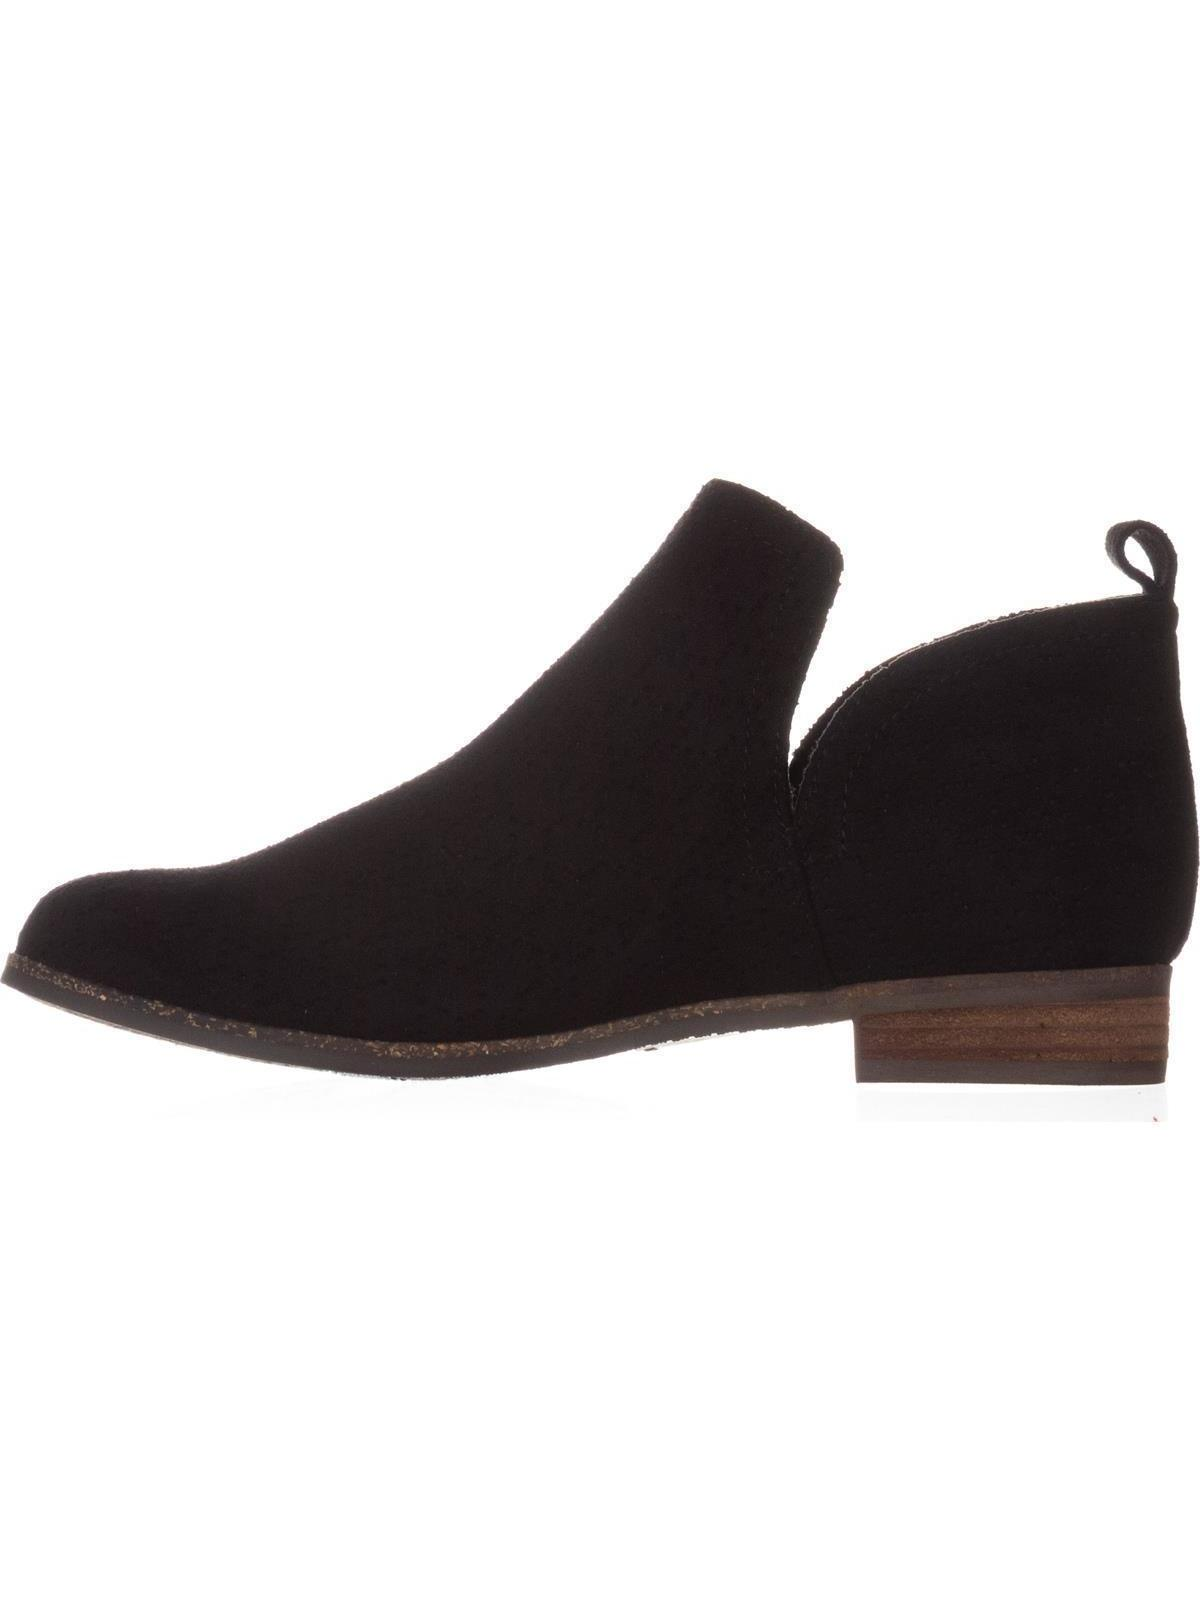 0532ac6fd3bb Dr. Scholl s Rate Flat Ankle Boots